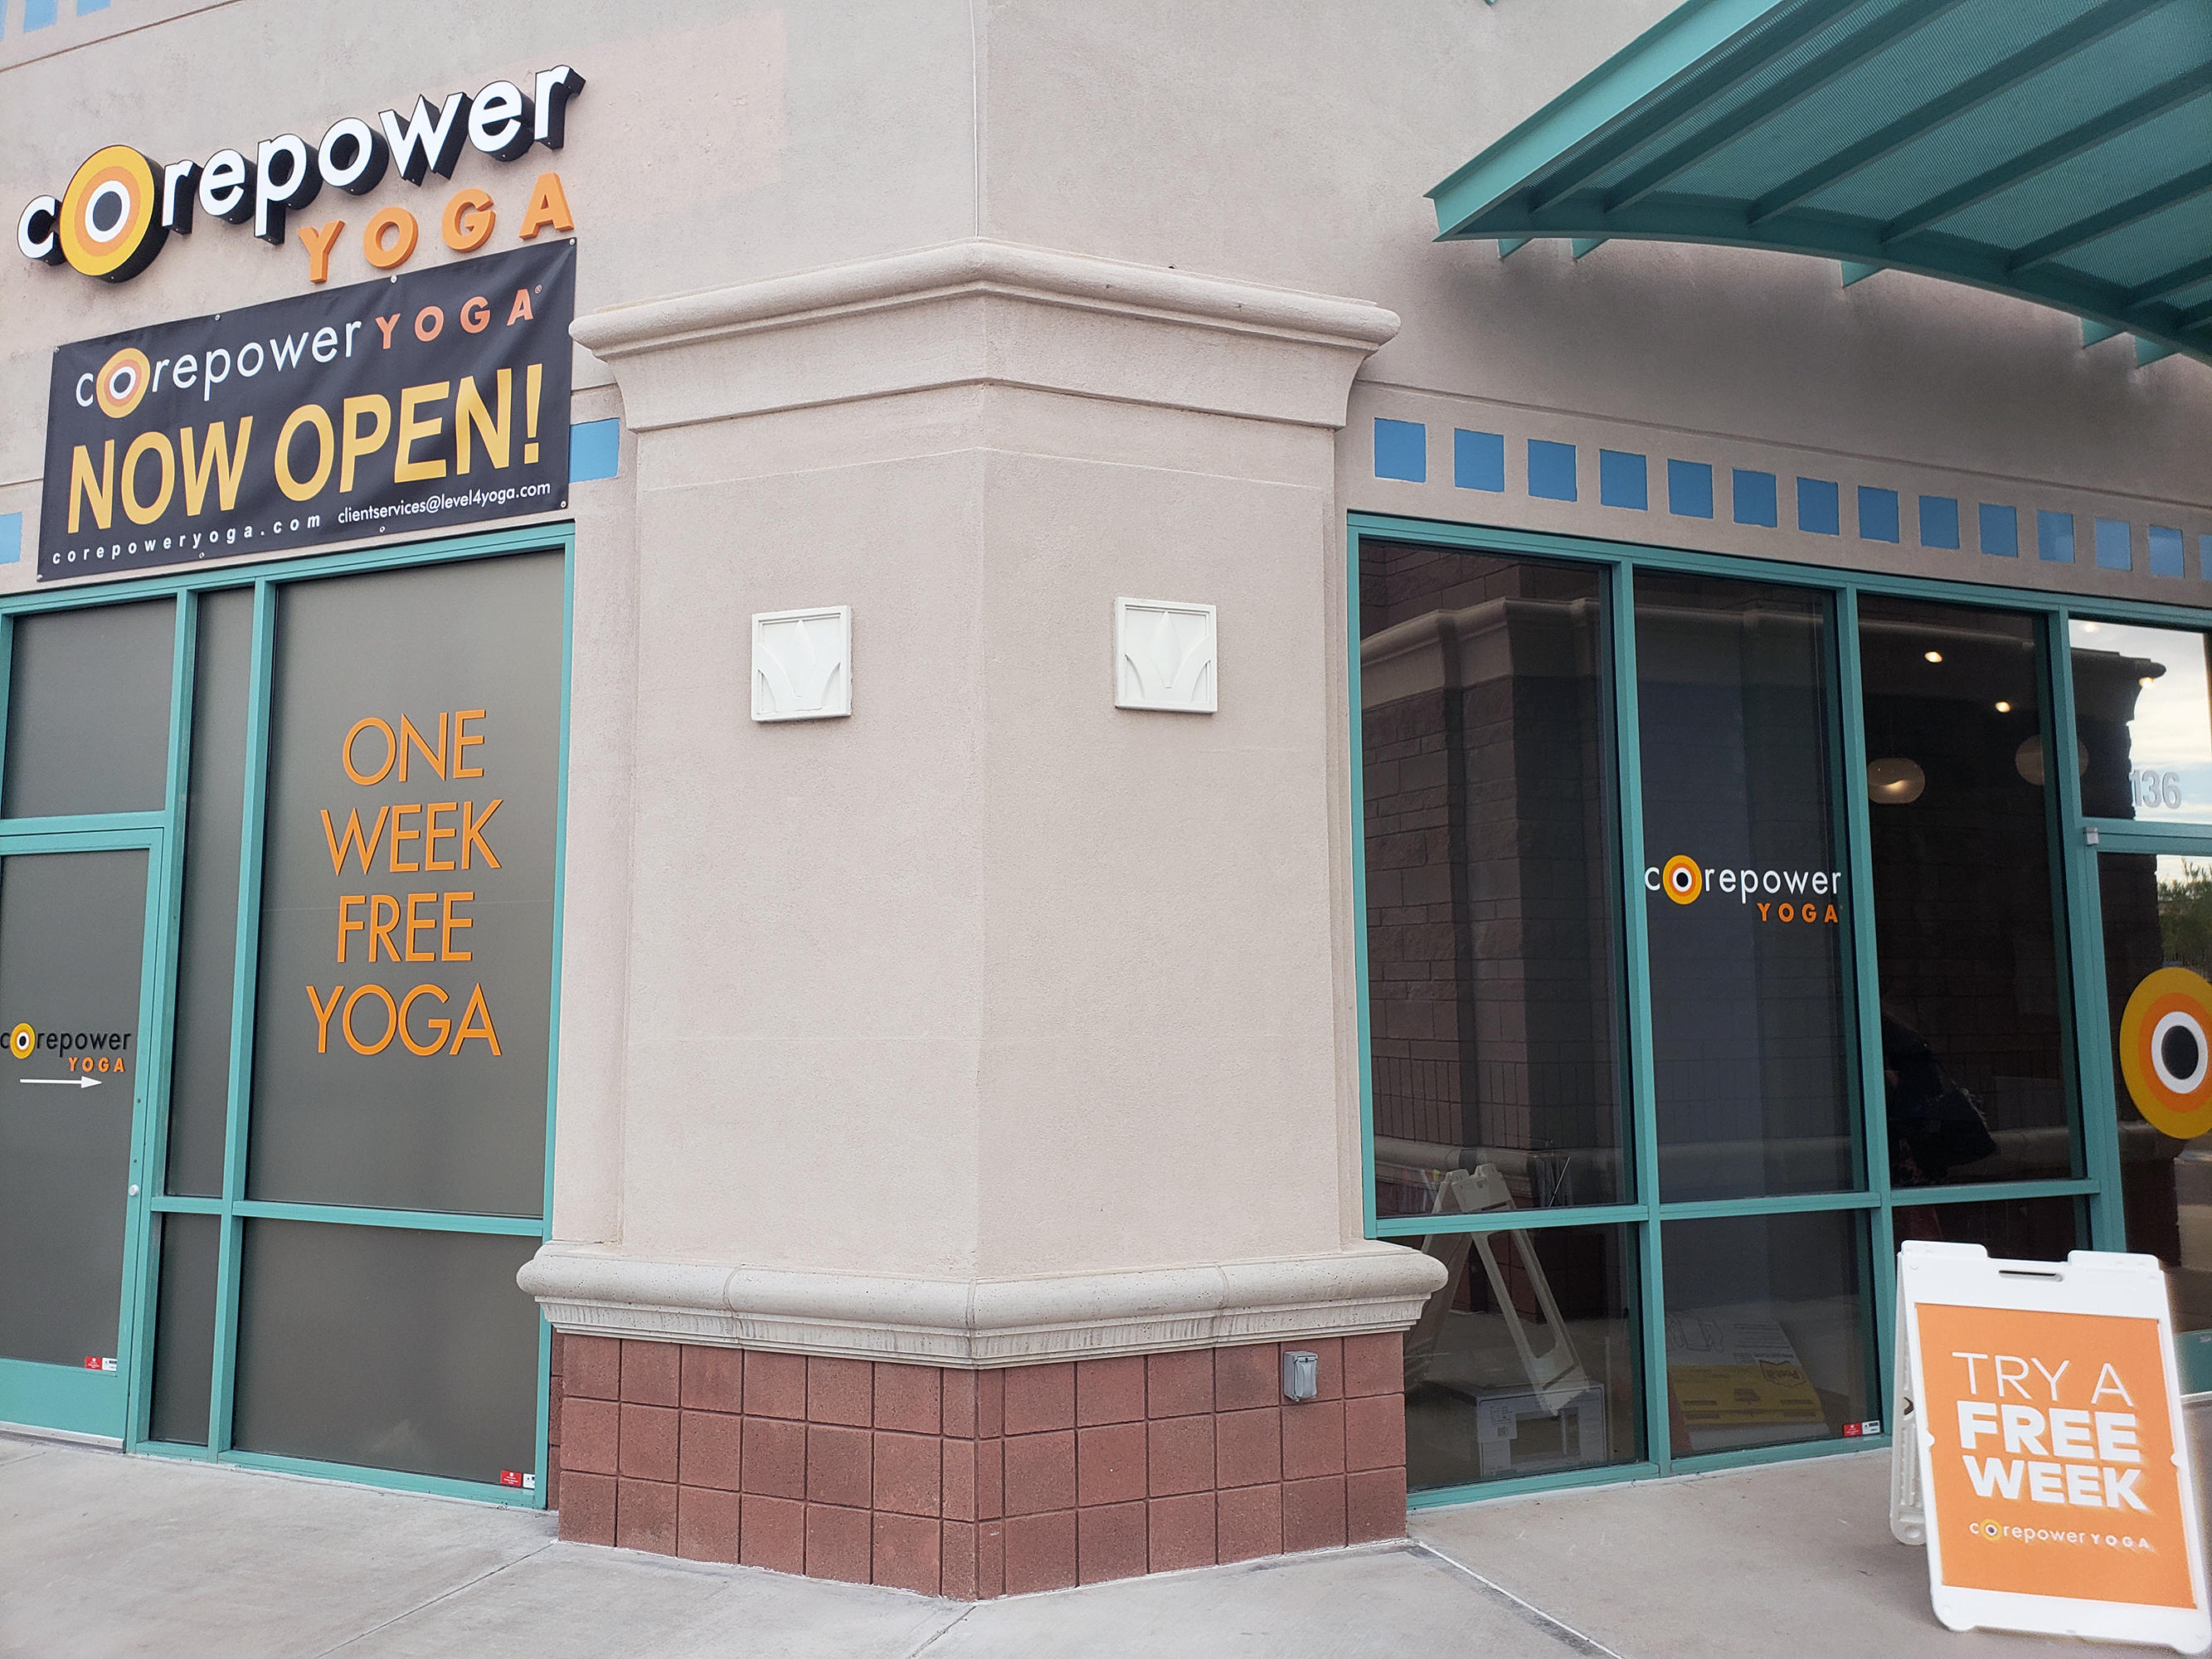 CorePower Yoga image 4